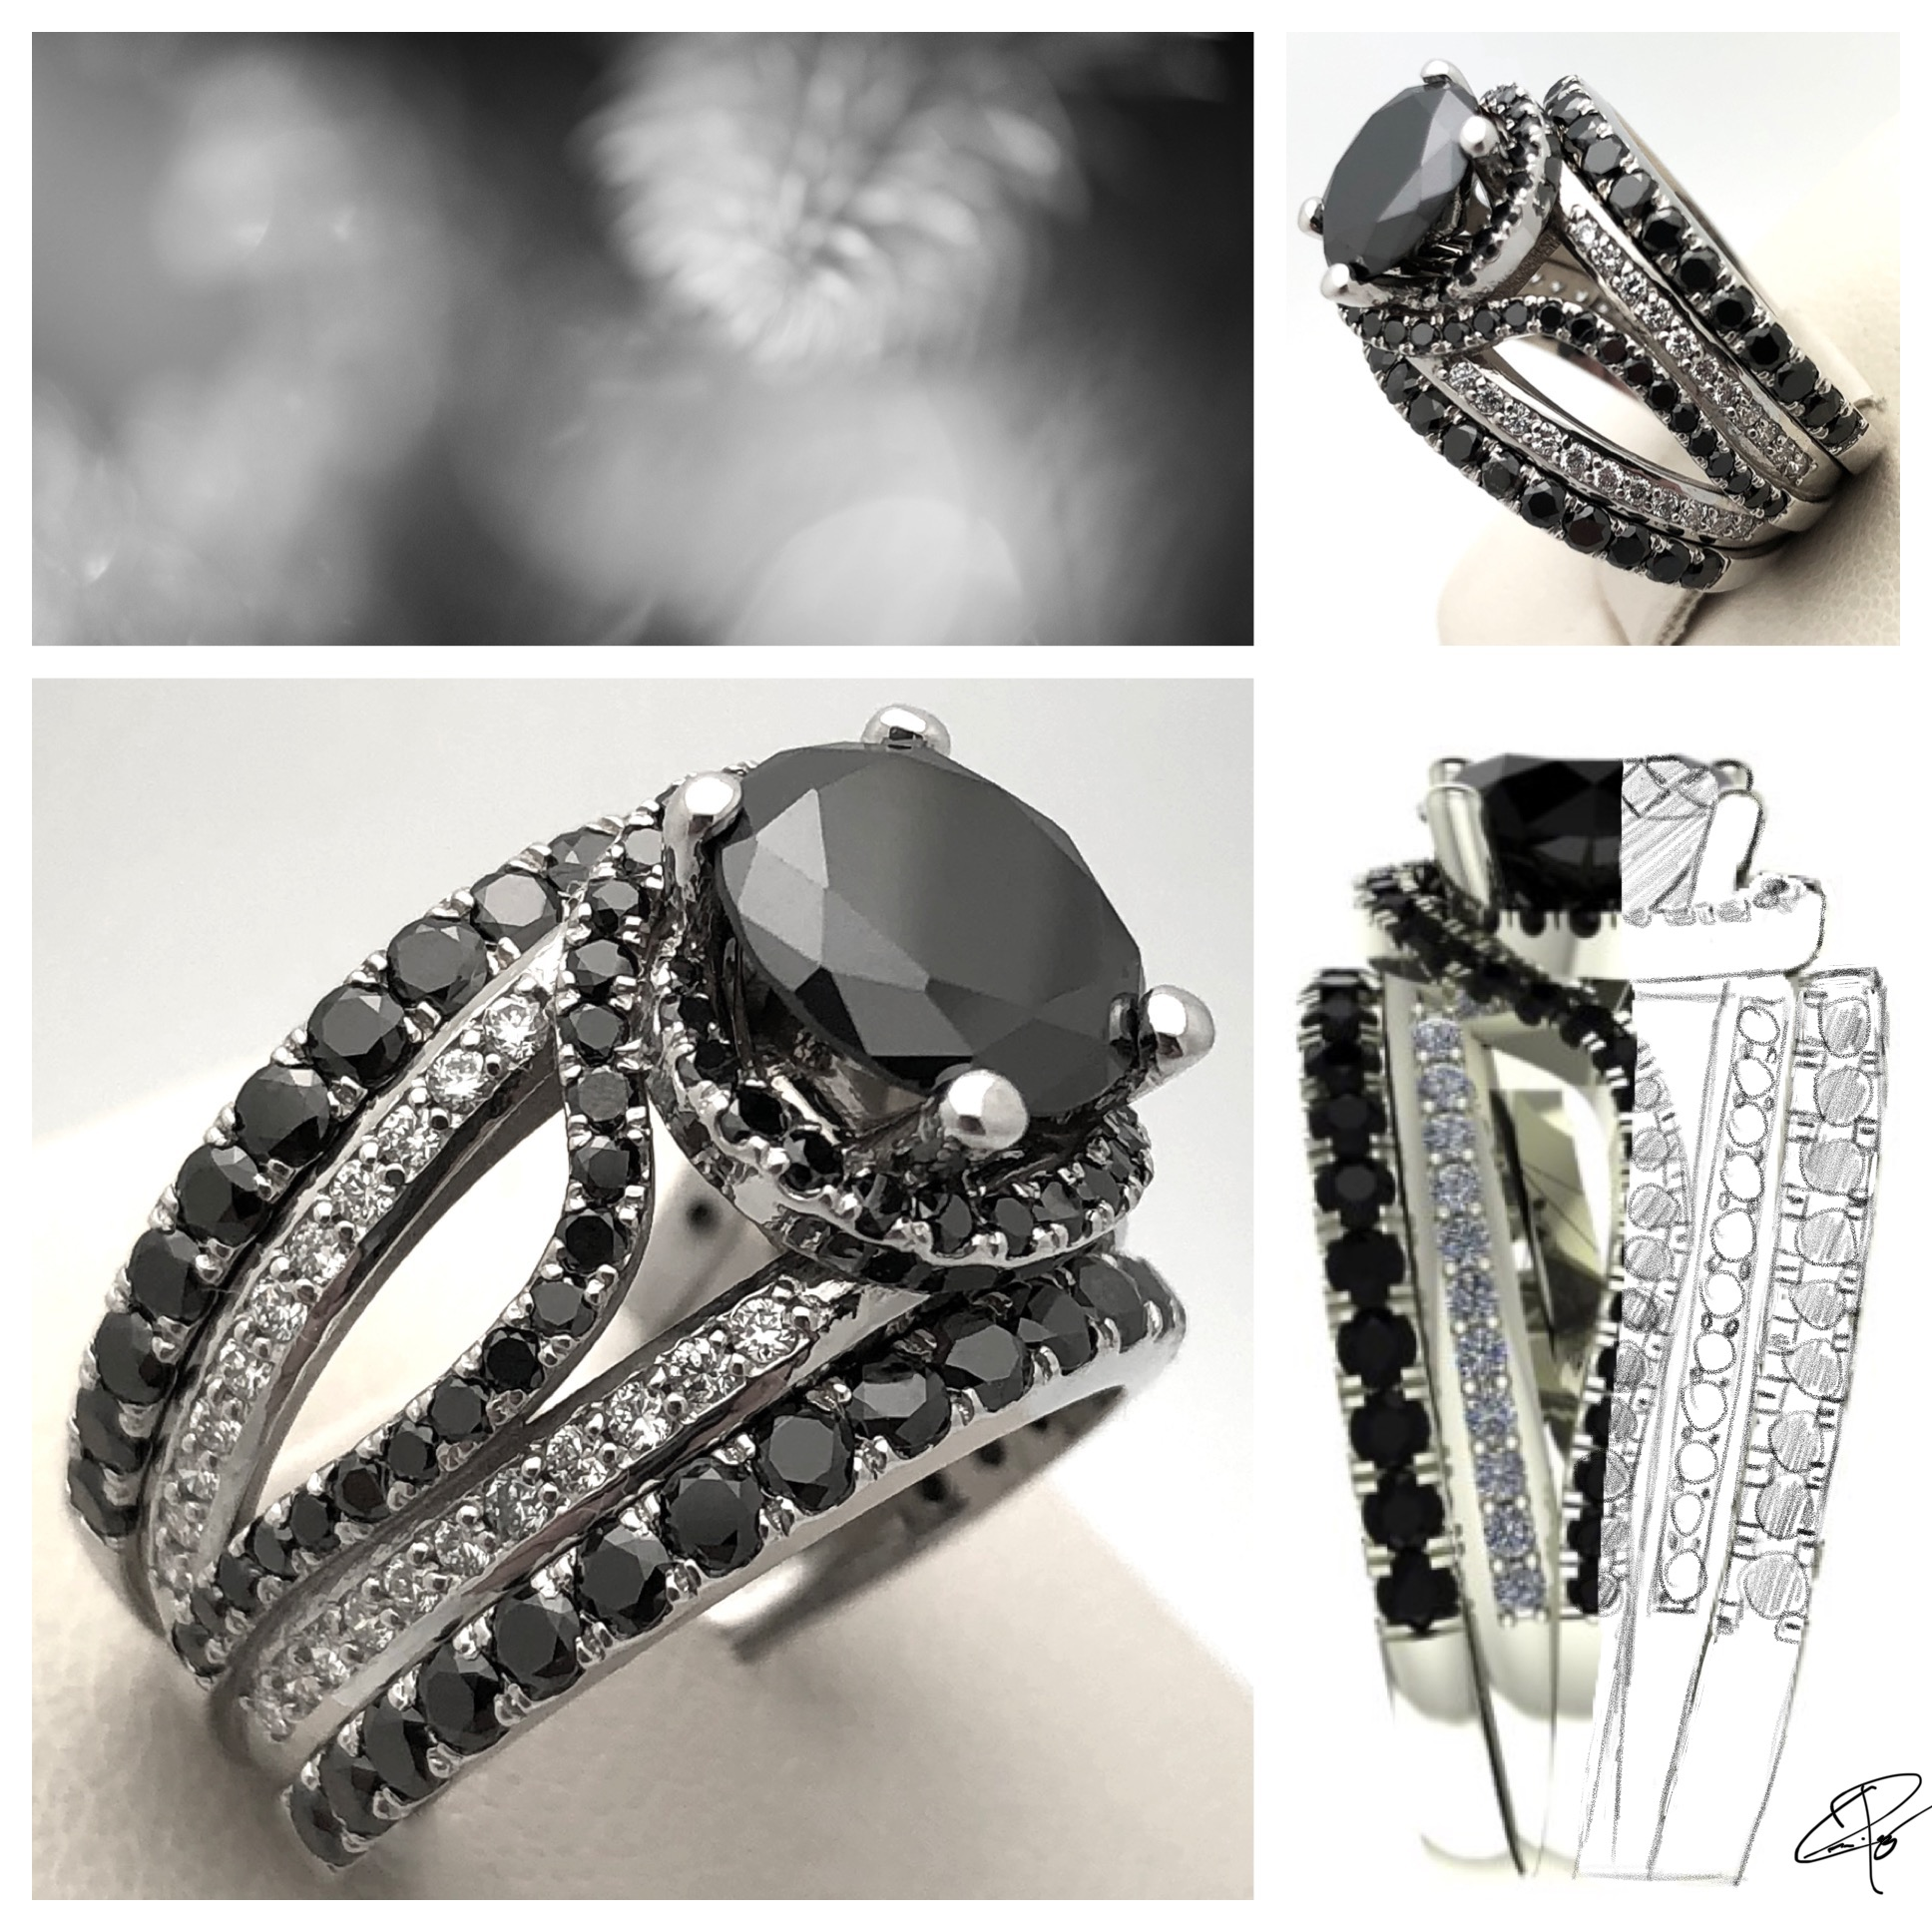 Jewelry design and handcrafting - We provide ideas, CAD drawings and the expert craftsmanship needed to make your next special piece.